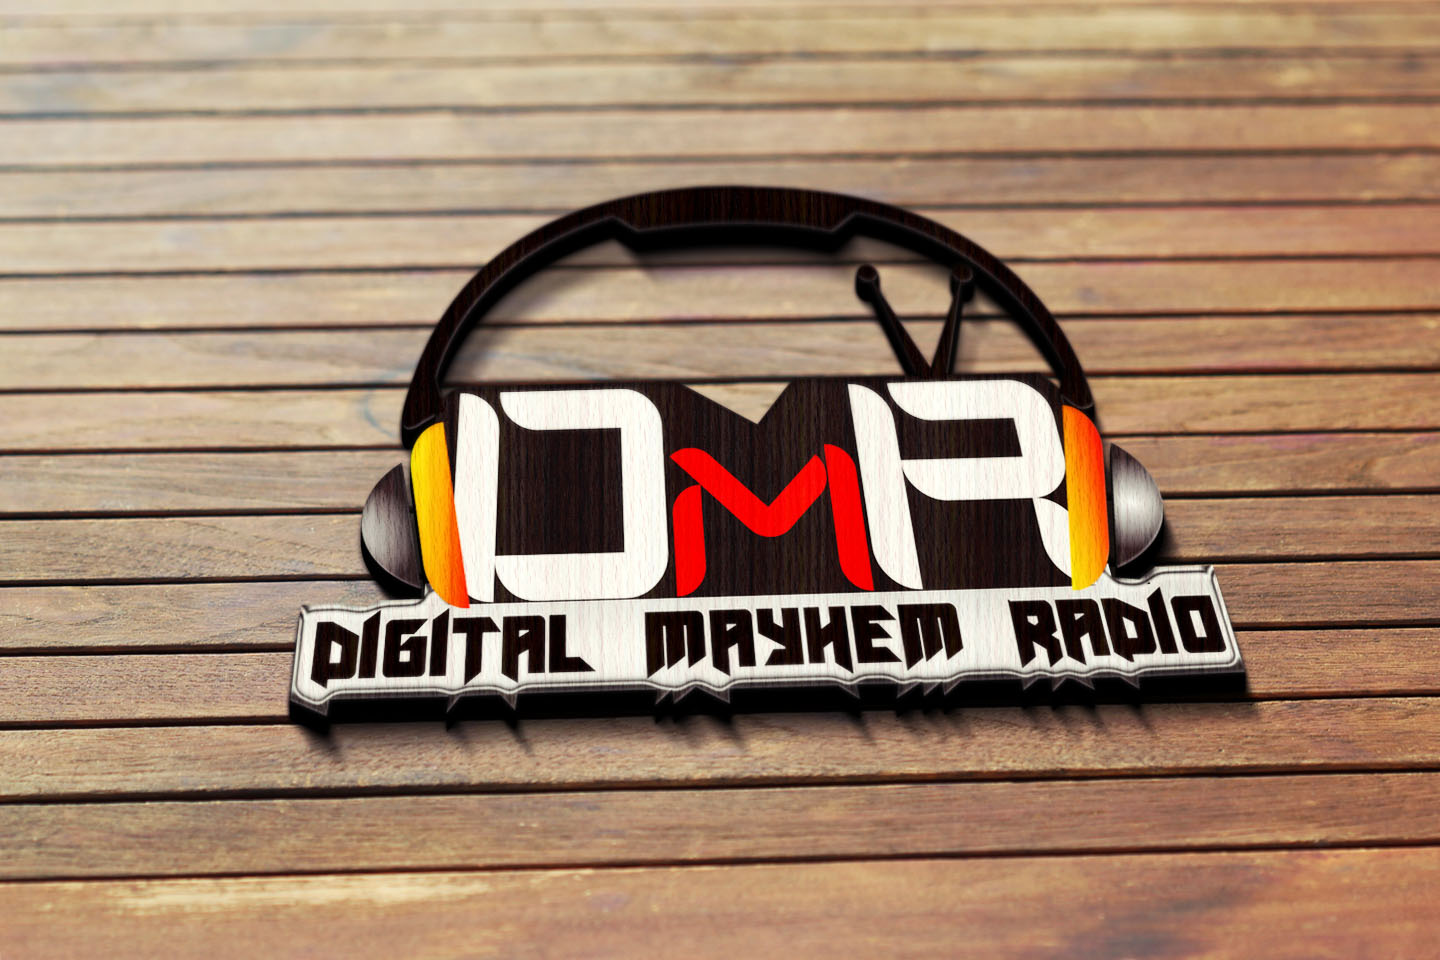 air your audio commercial on our Radio Station for 30 days